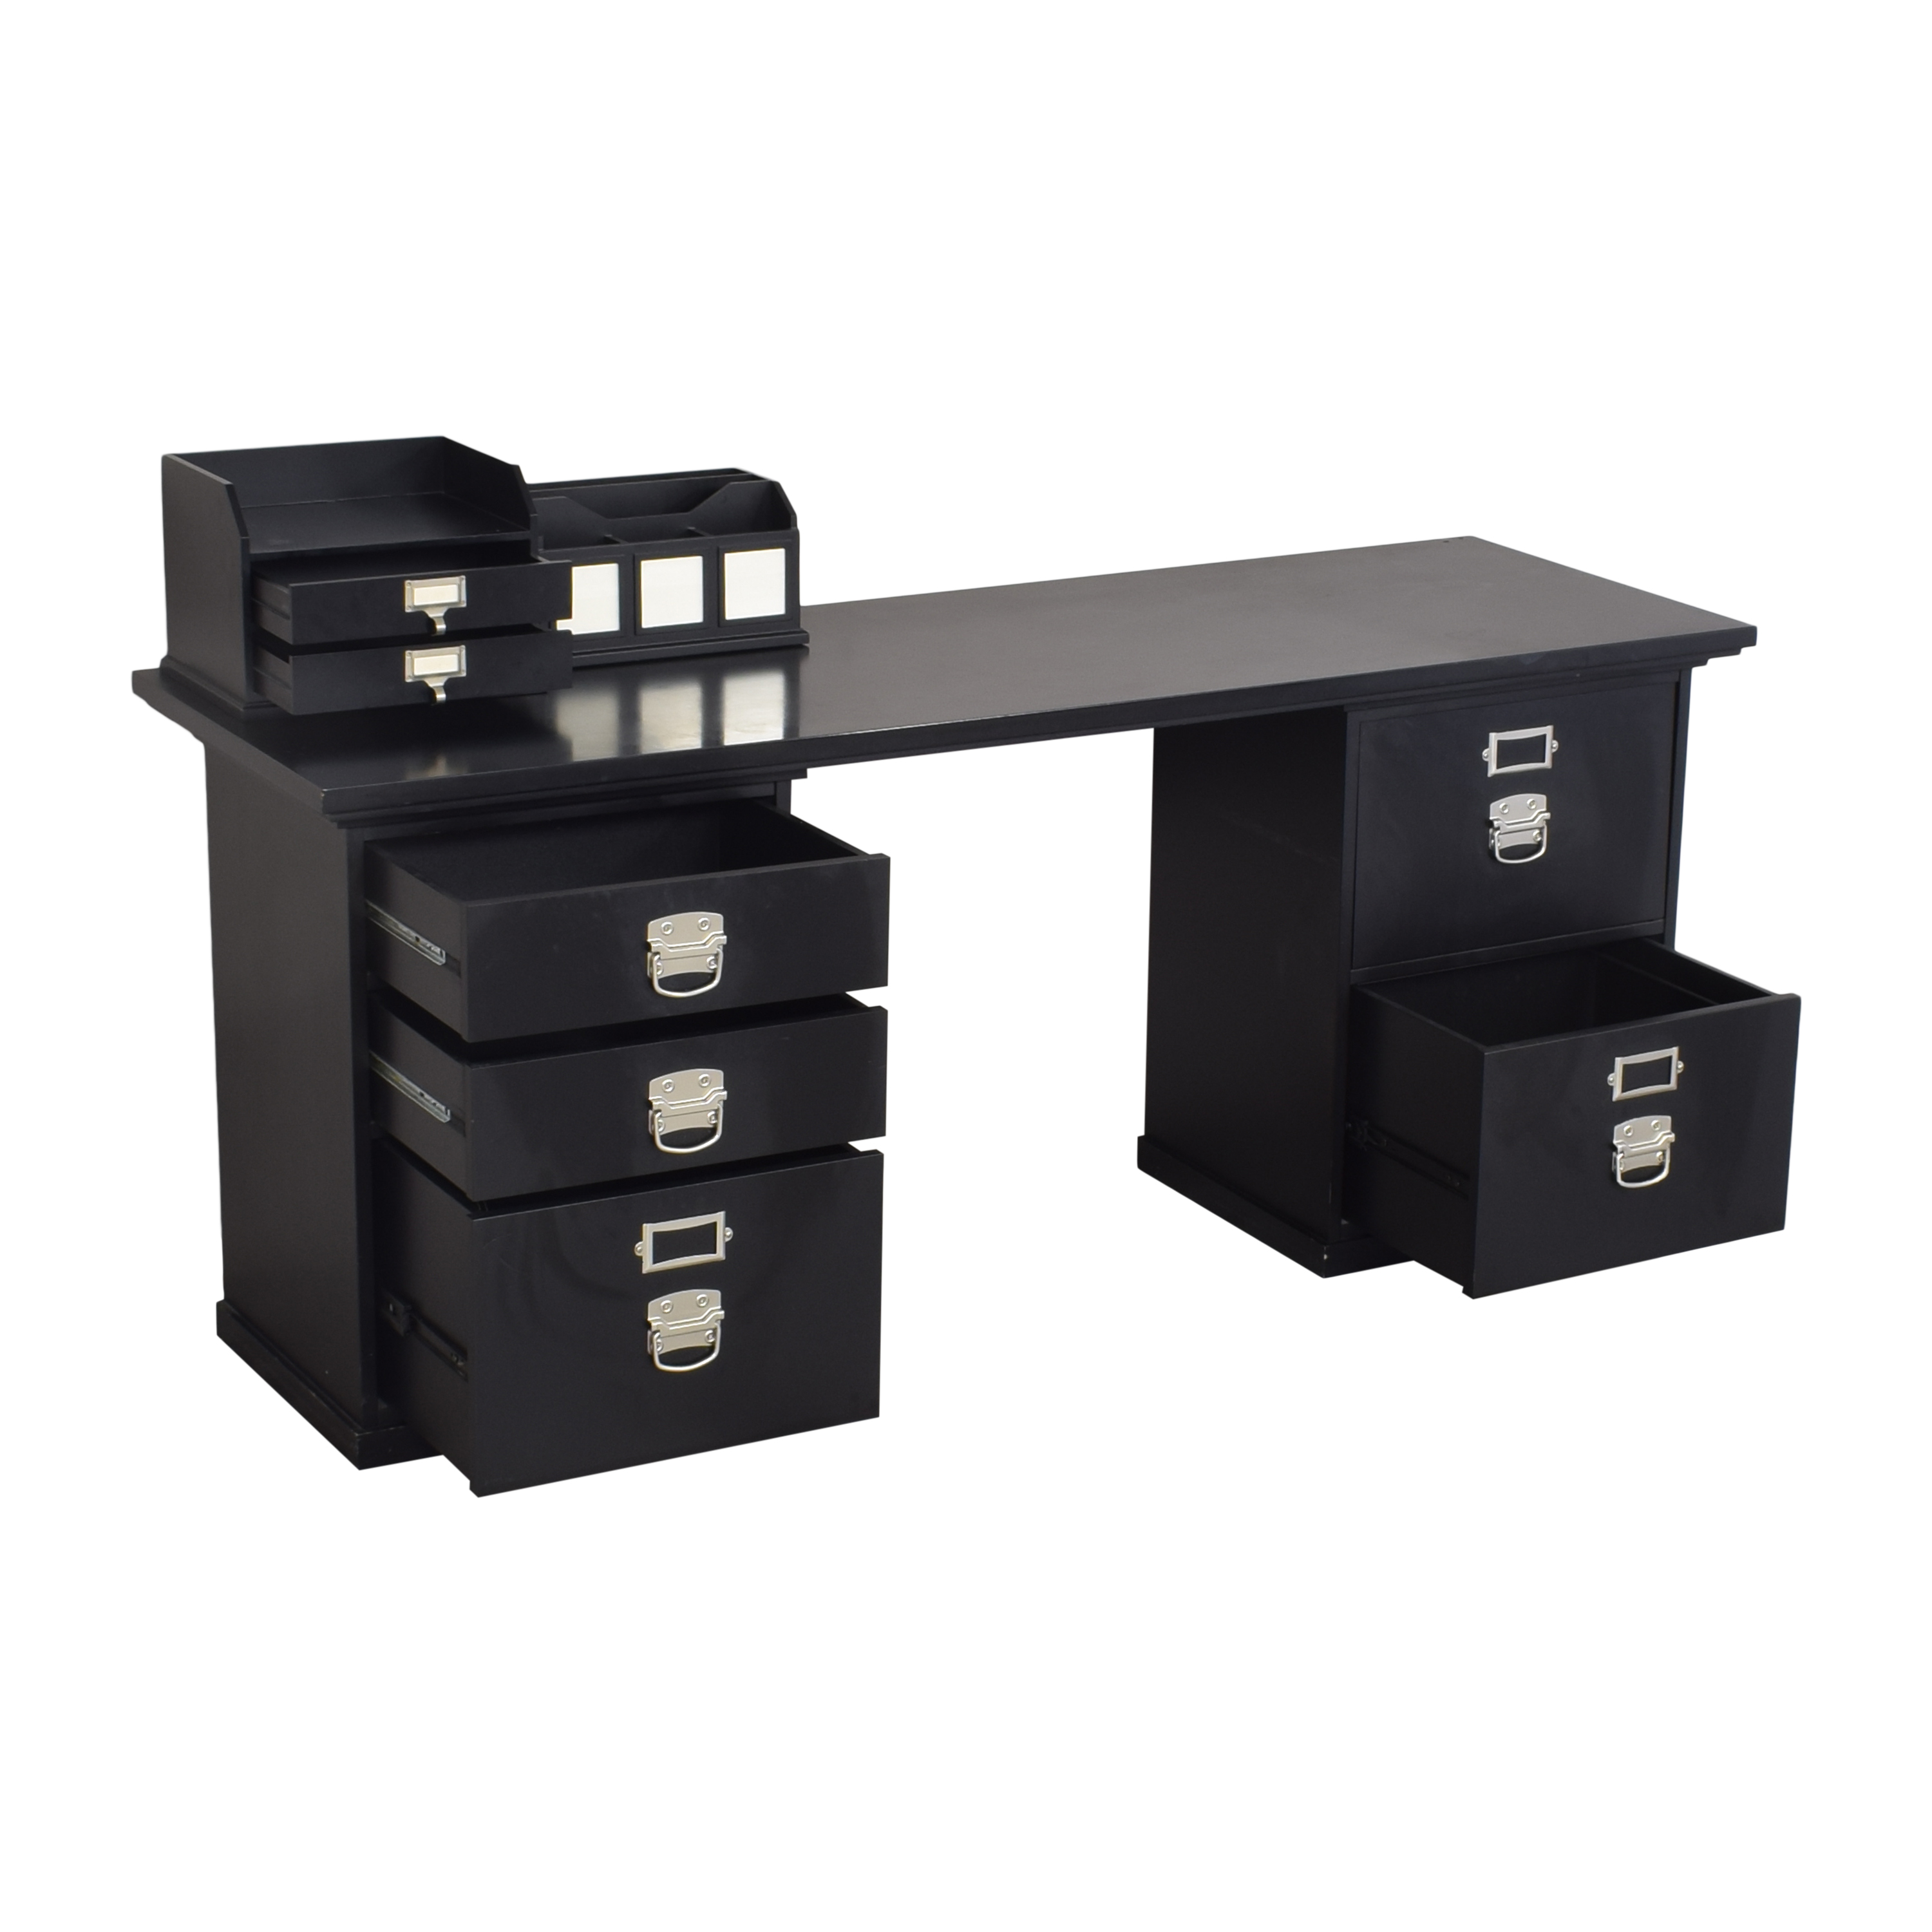 Pottery Barn Bedford Desk with Caddies sale